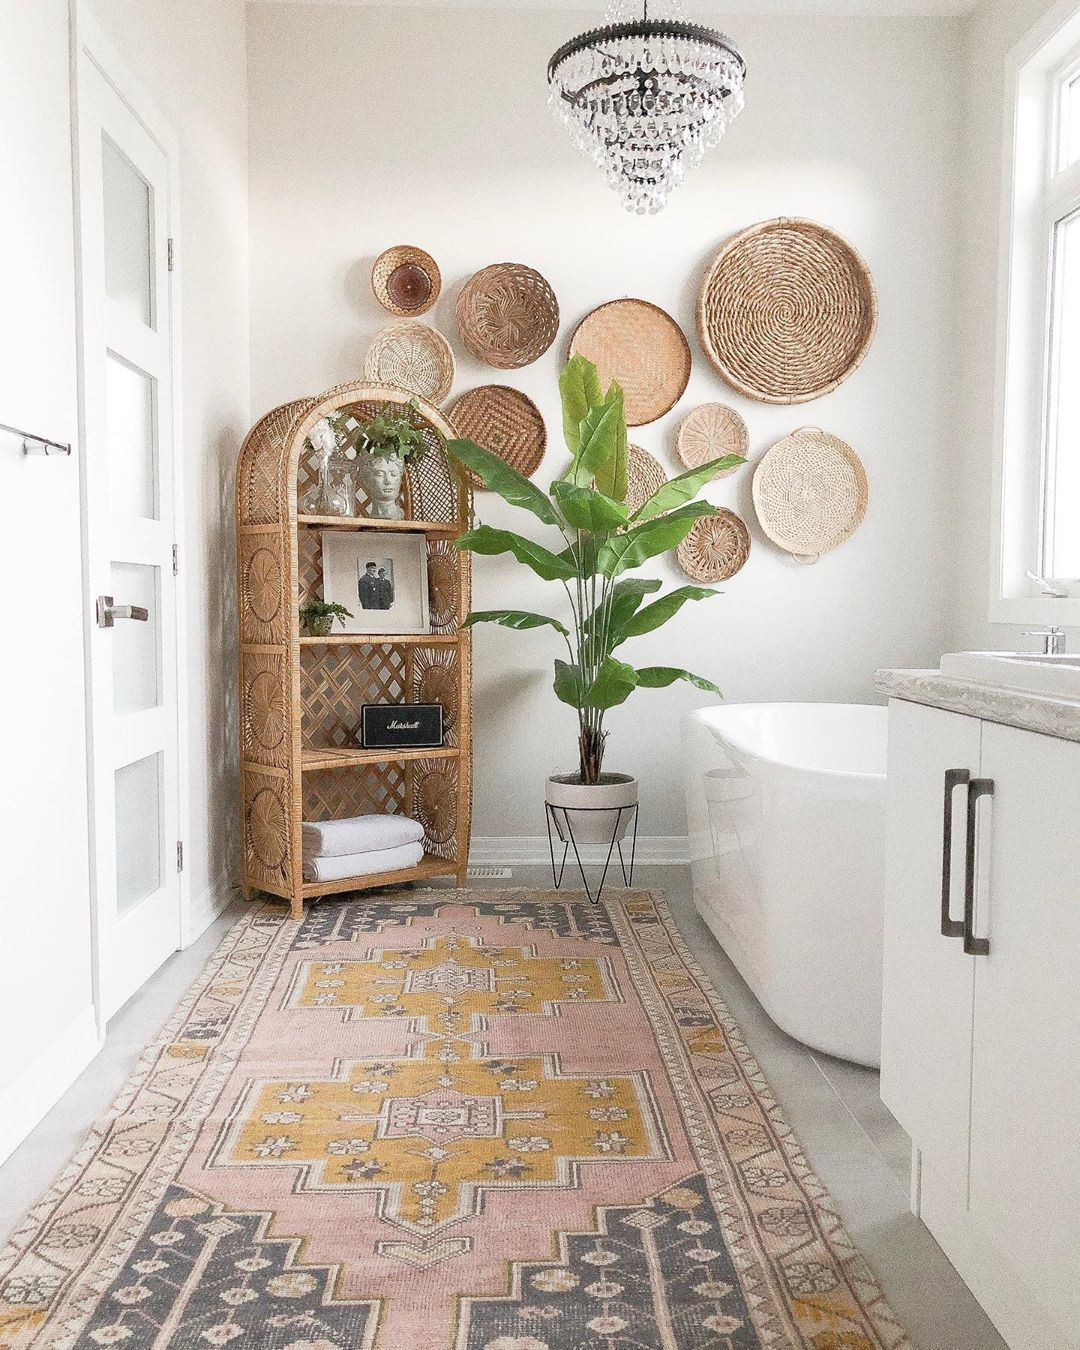 30 Quick And Easy Bathroom Decorating Ideas Bohemian Bathroom Easy Bathroom Decorating Yellow Bath Rugs [ 1350 x 1080 Pixel ]